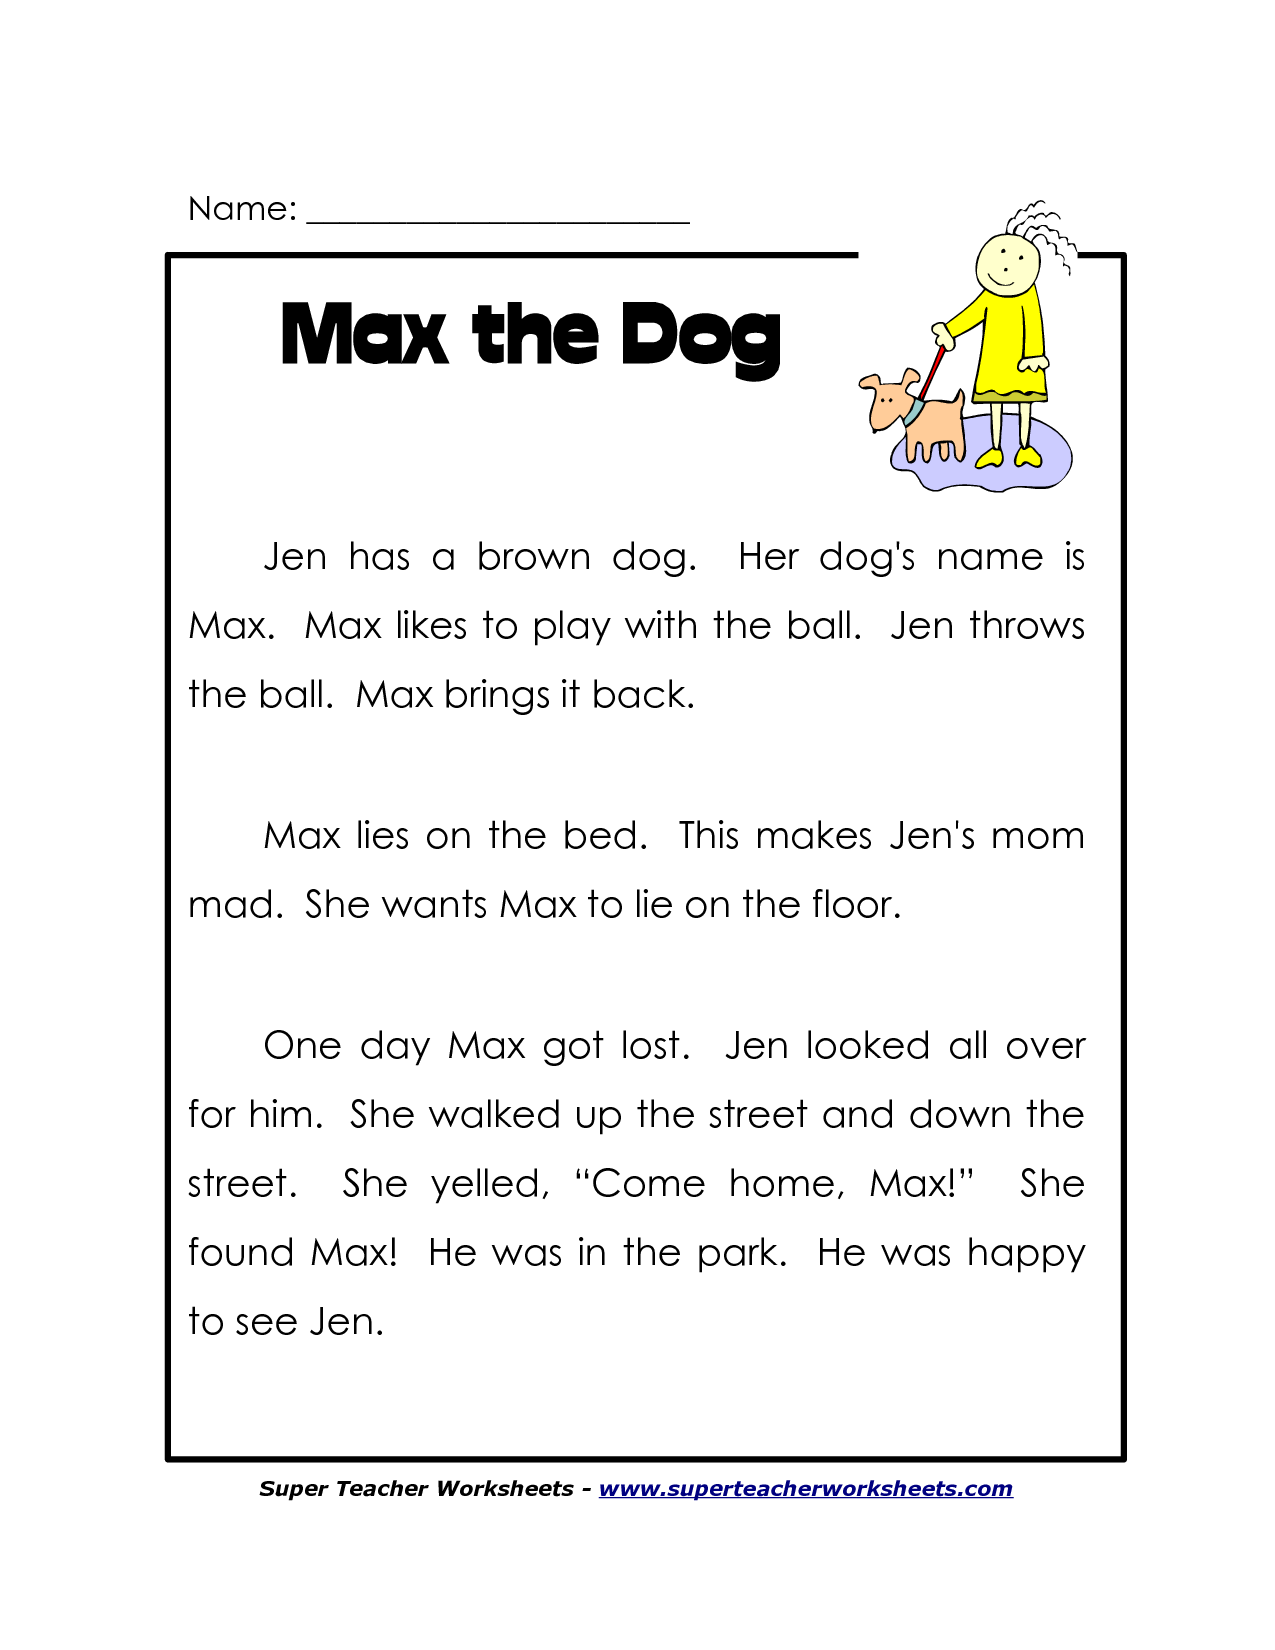 Worksheet Reading Comprehension Worksheets For 1st Grade 1st grade reading printable worksheets pichaglobal comprehension and children on pinterest grade